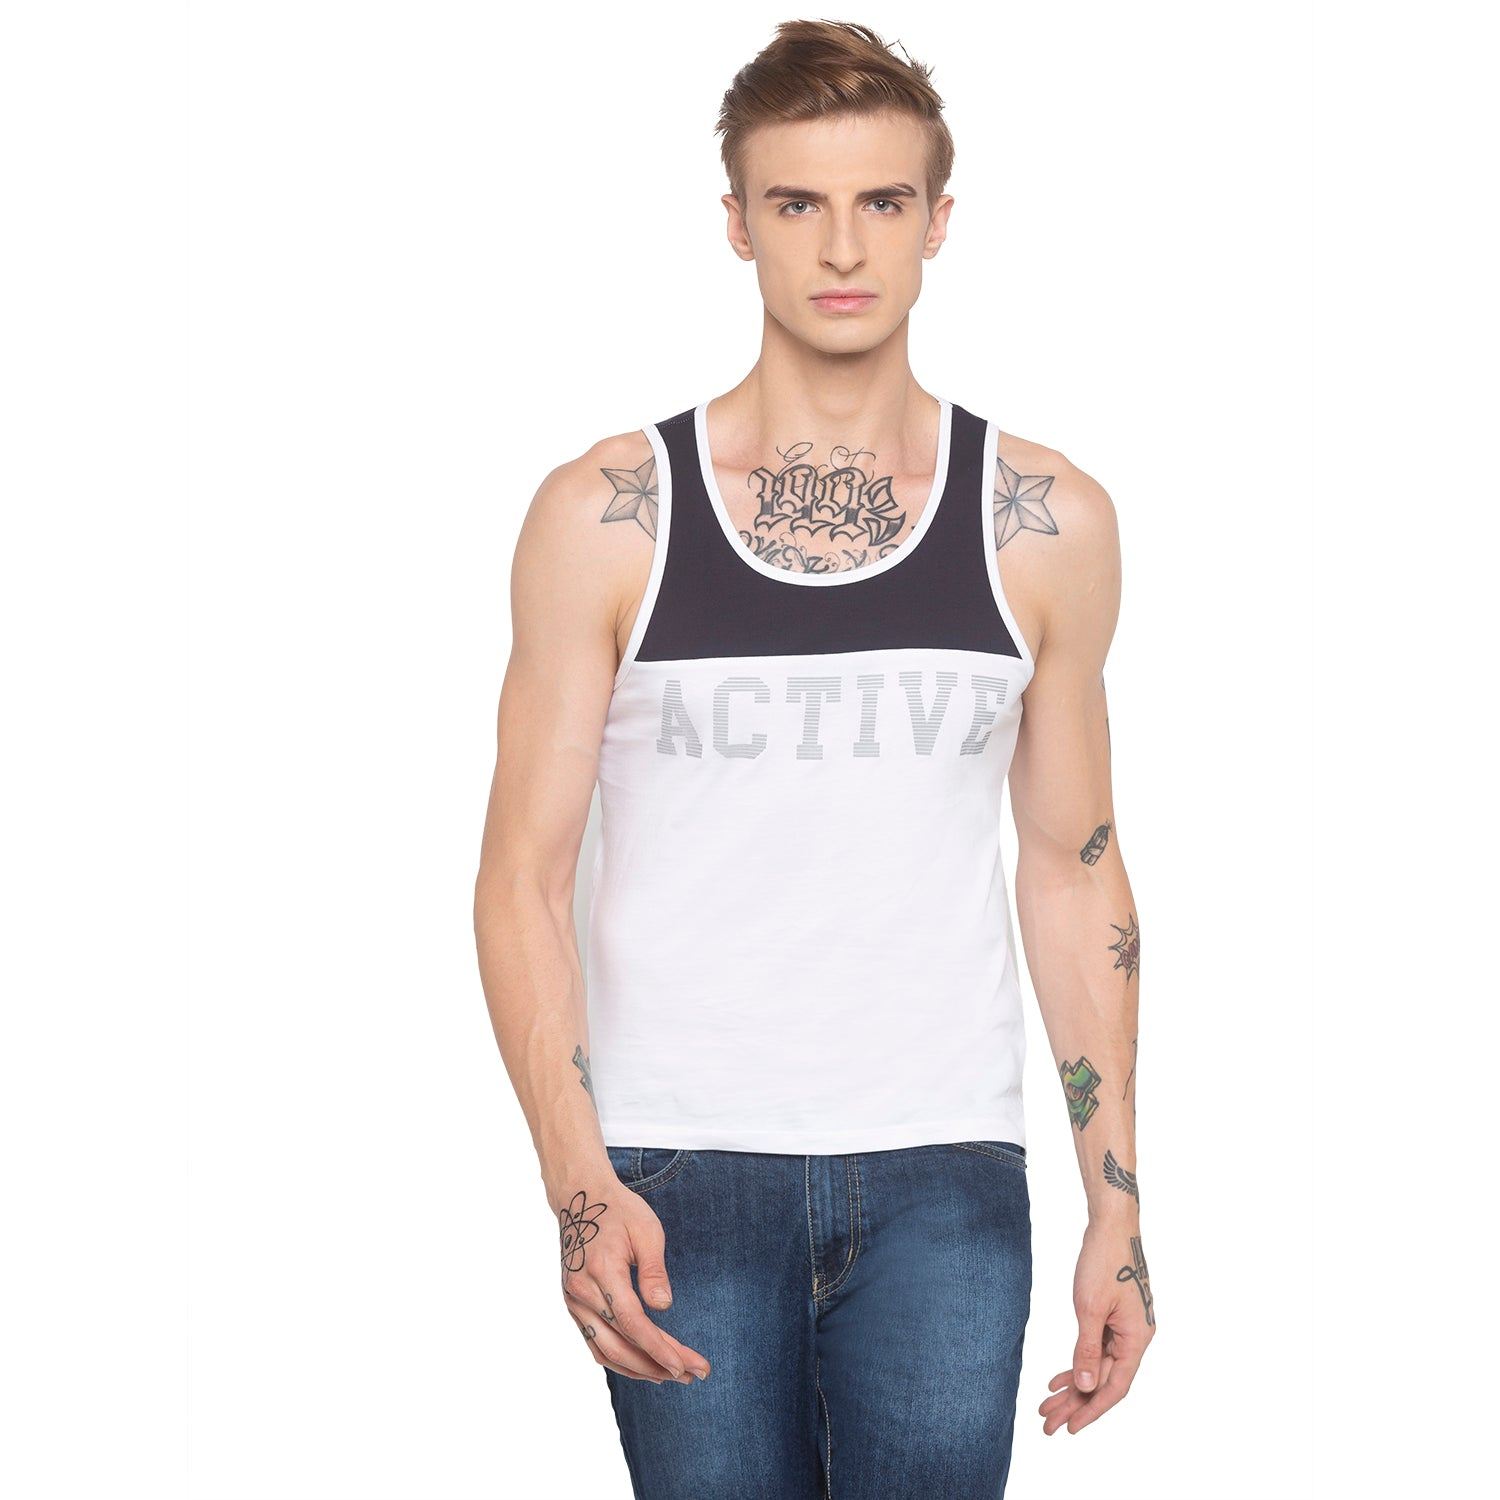 Racerback Sleeveless White T-shirt-1